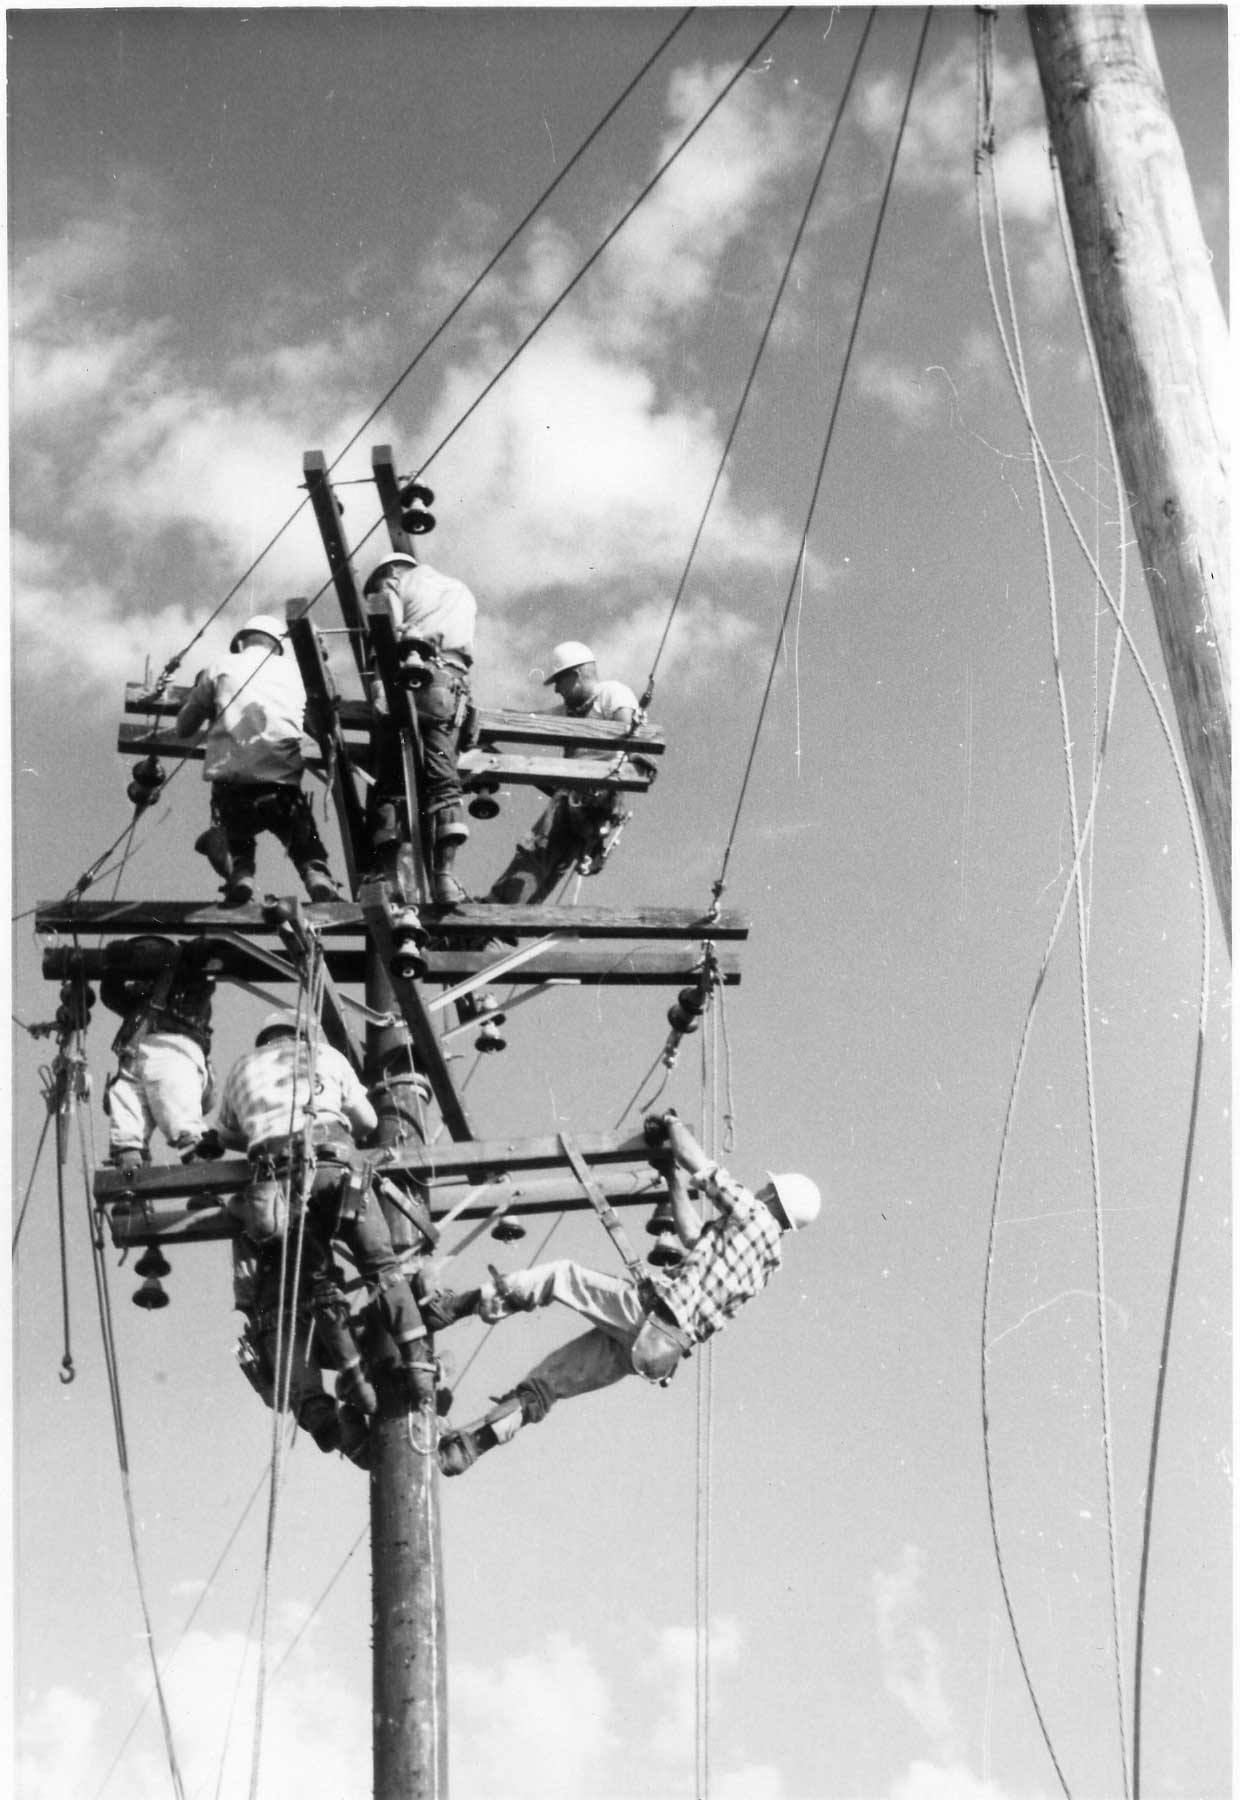 Seven linemen on top of a power pole